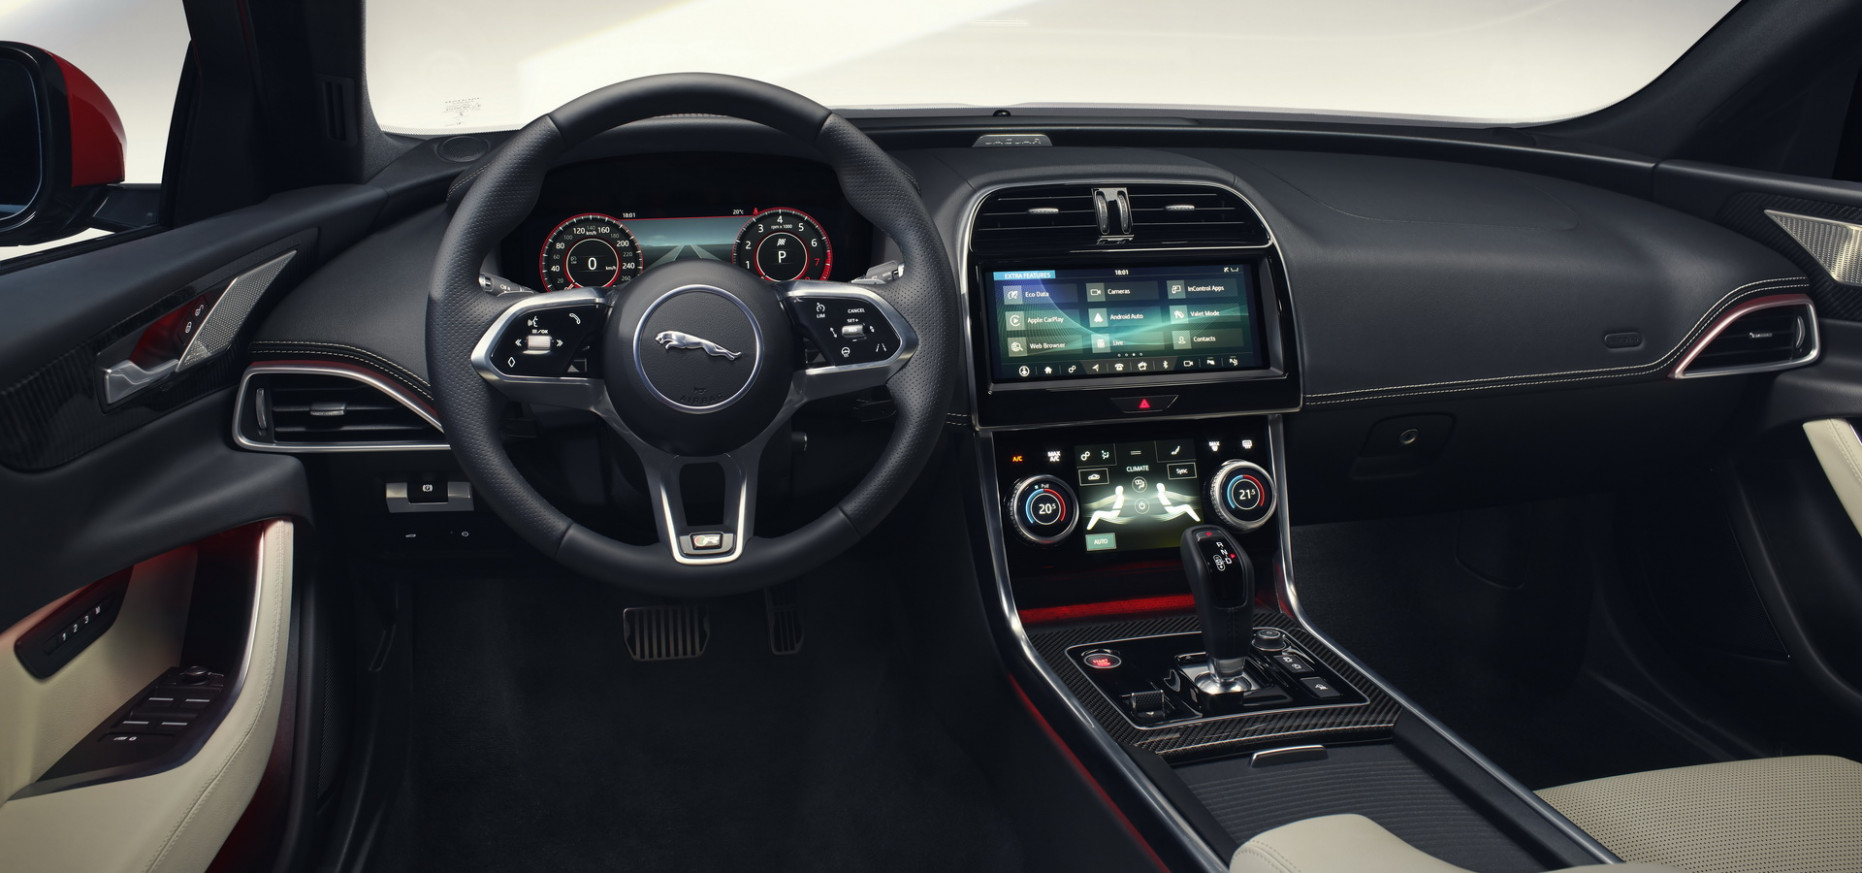 Redesign and Concept New Jaguar Xe 2022 Interior